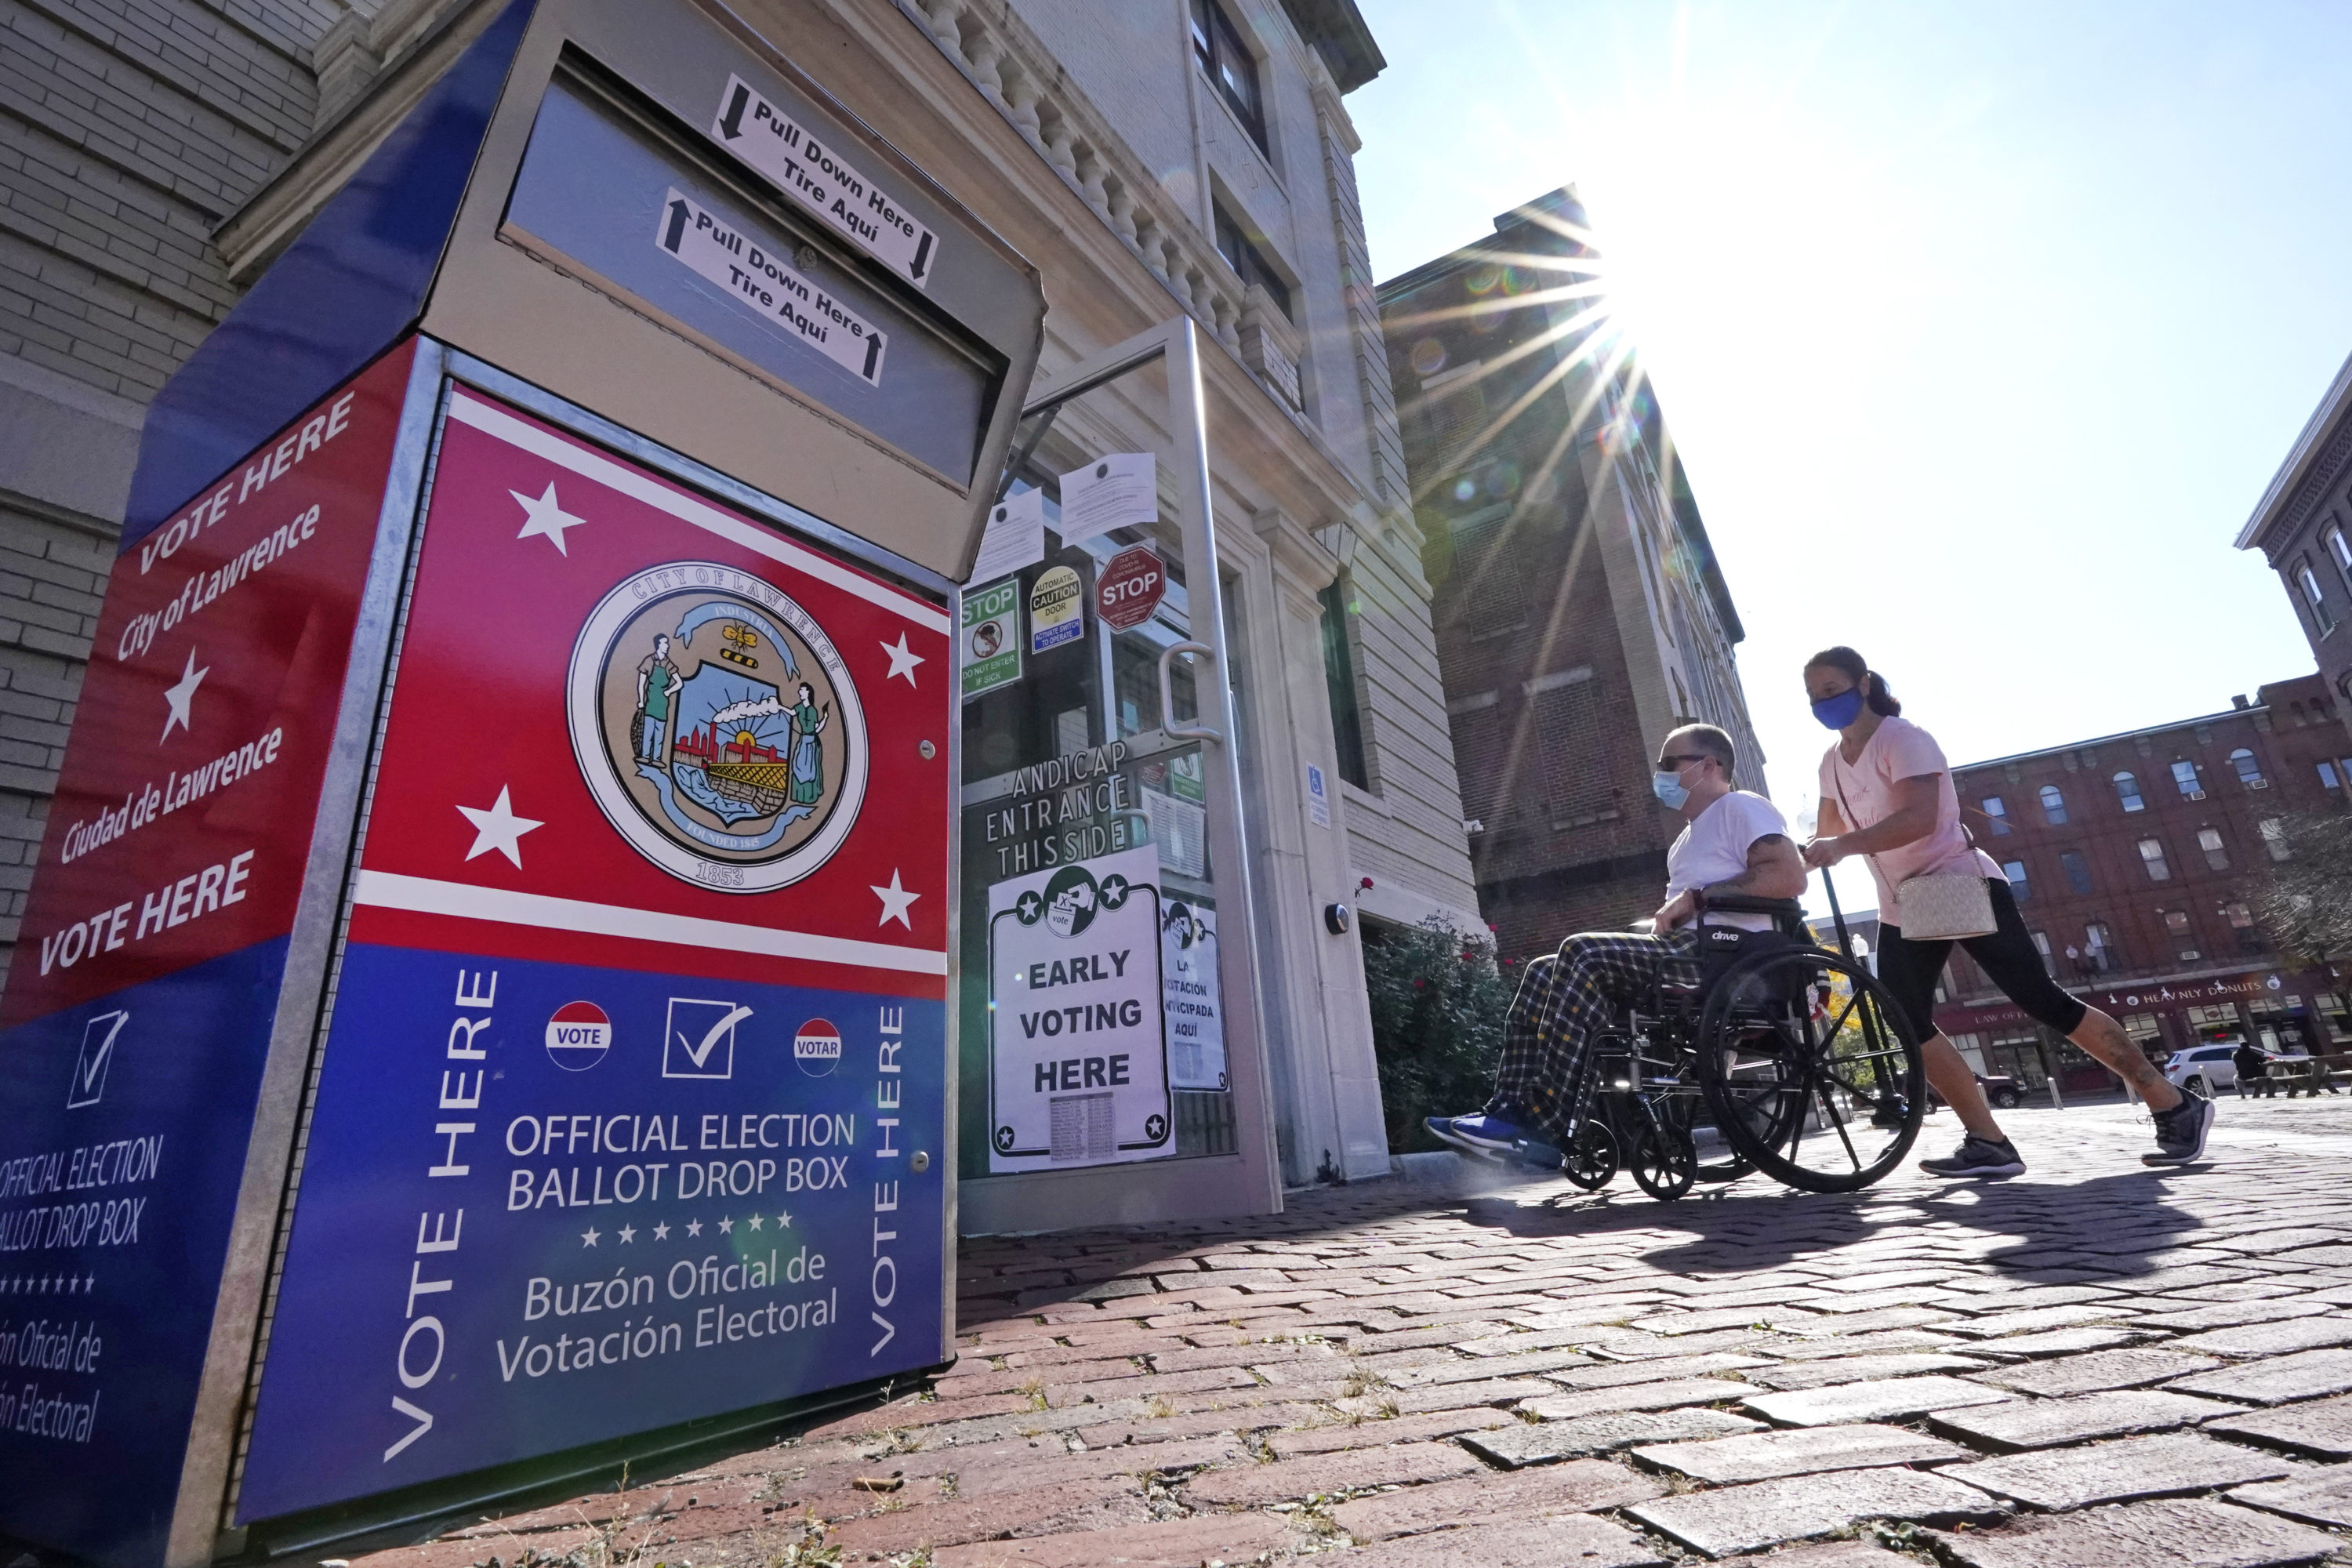 Voters enter Lawrence City Hall during early in-person voting, Oct. 22, 2020, in Lawrence, Mass. (Elise Amendola/AP)